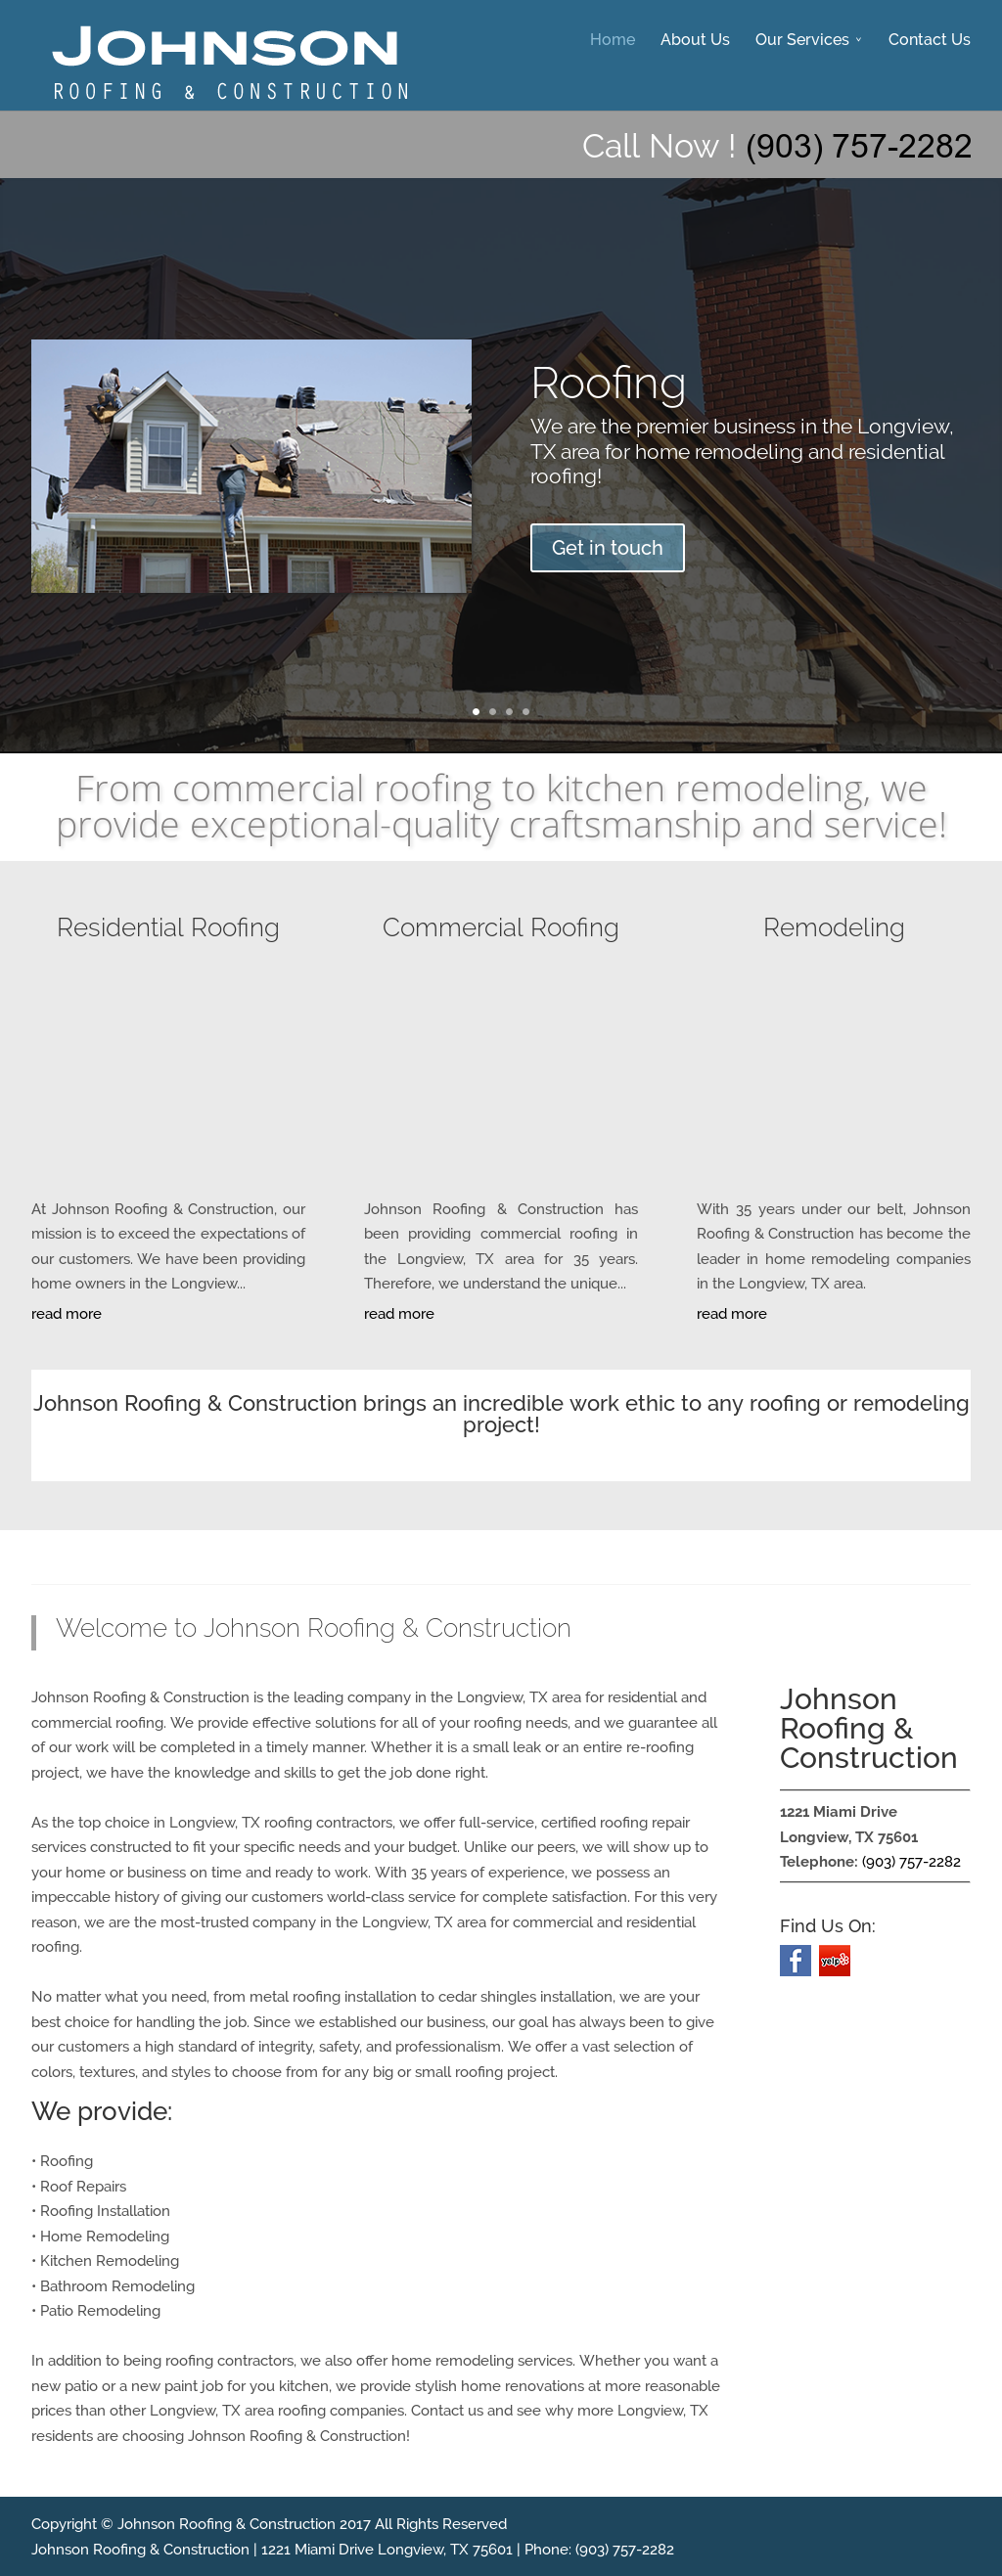 Johnson Roofing Construction Website History